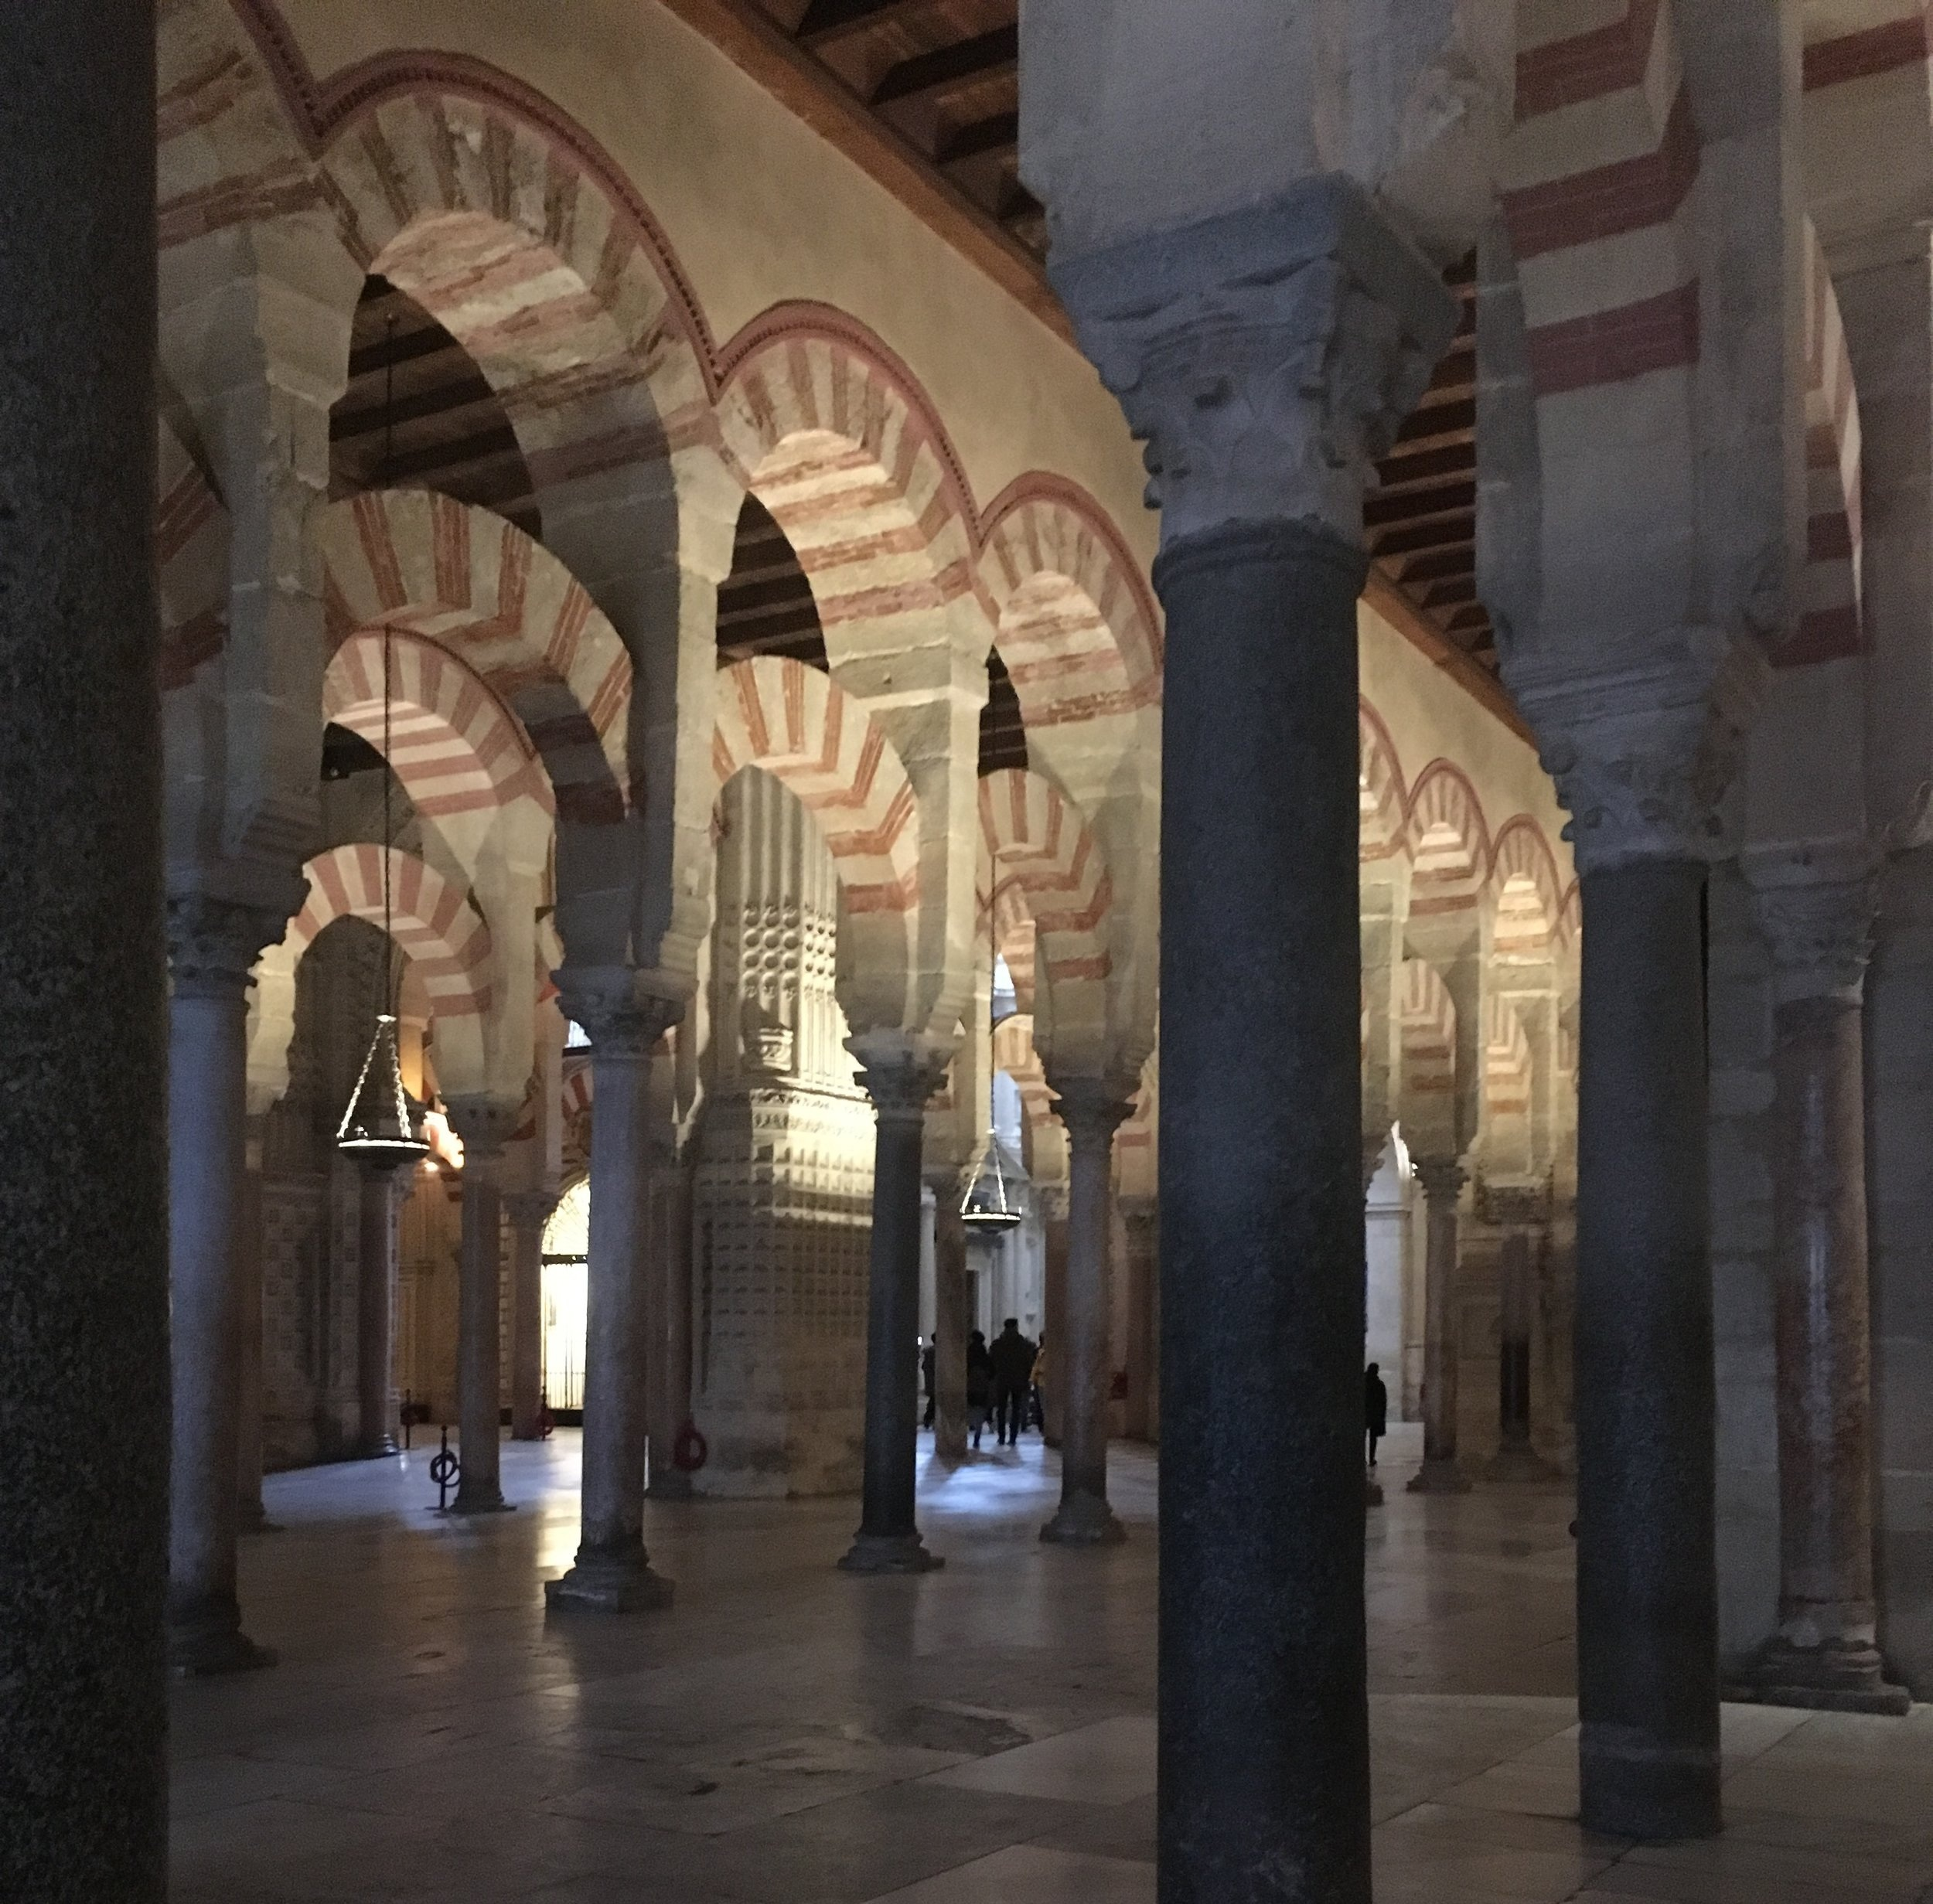 The+inside+of+the+cathedral-mosque+in+C%C3%B3rdoba